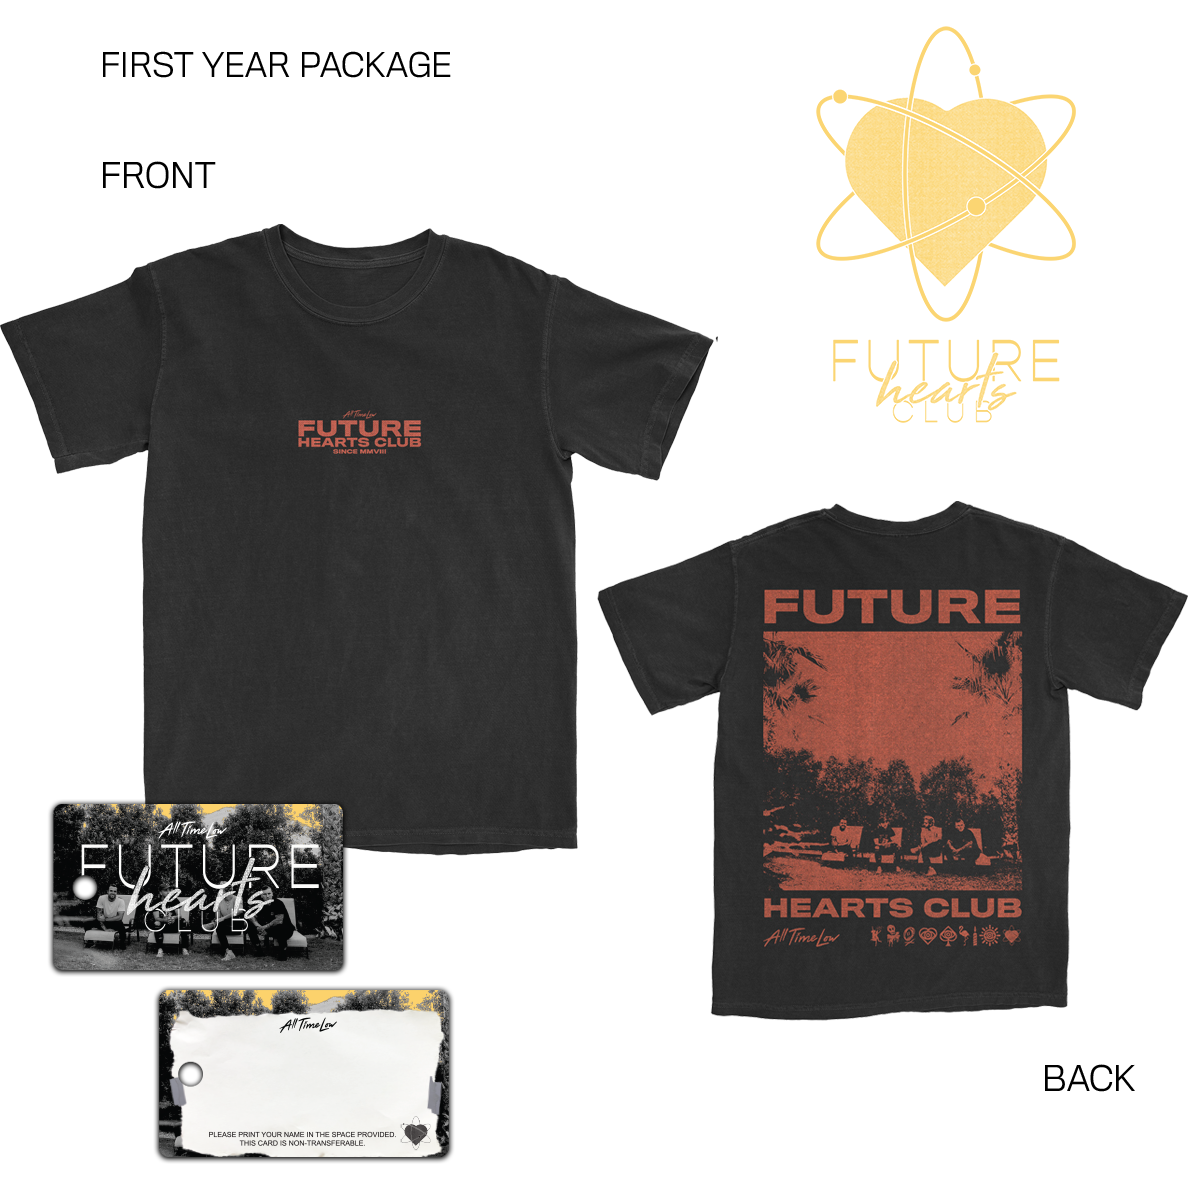 The All Time Low Hustlers Welcome Package includes the exclusive First Year All Time Low Future Hearts Club t-shirt, key card and poster.